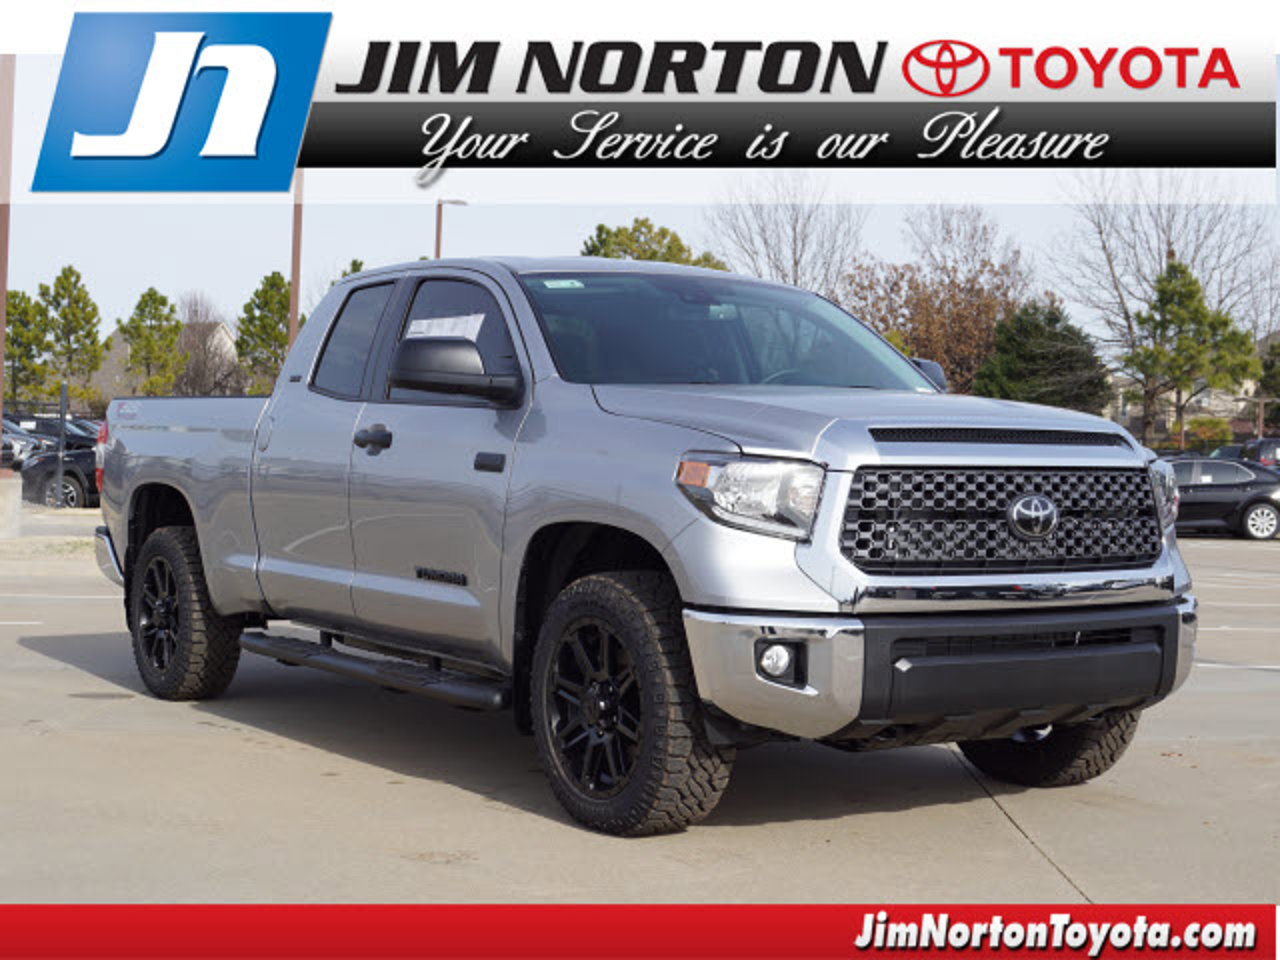 2020 Toyota Tundra SR5 4WD Double Cab Standard Bed 6.5' Bed 5.7L